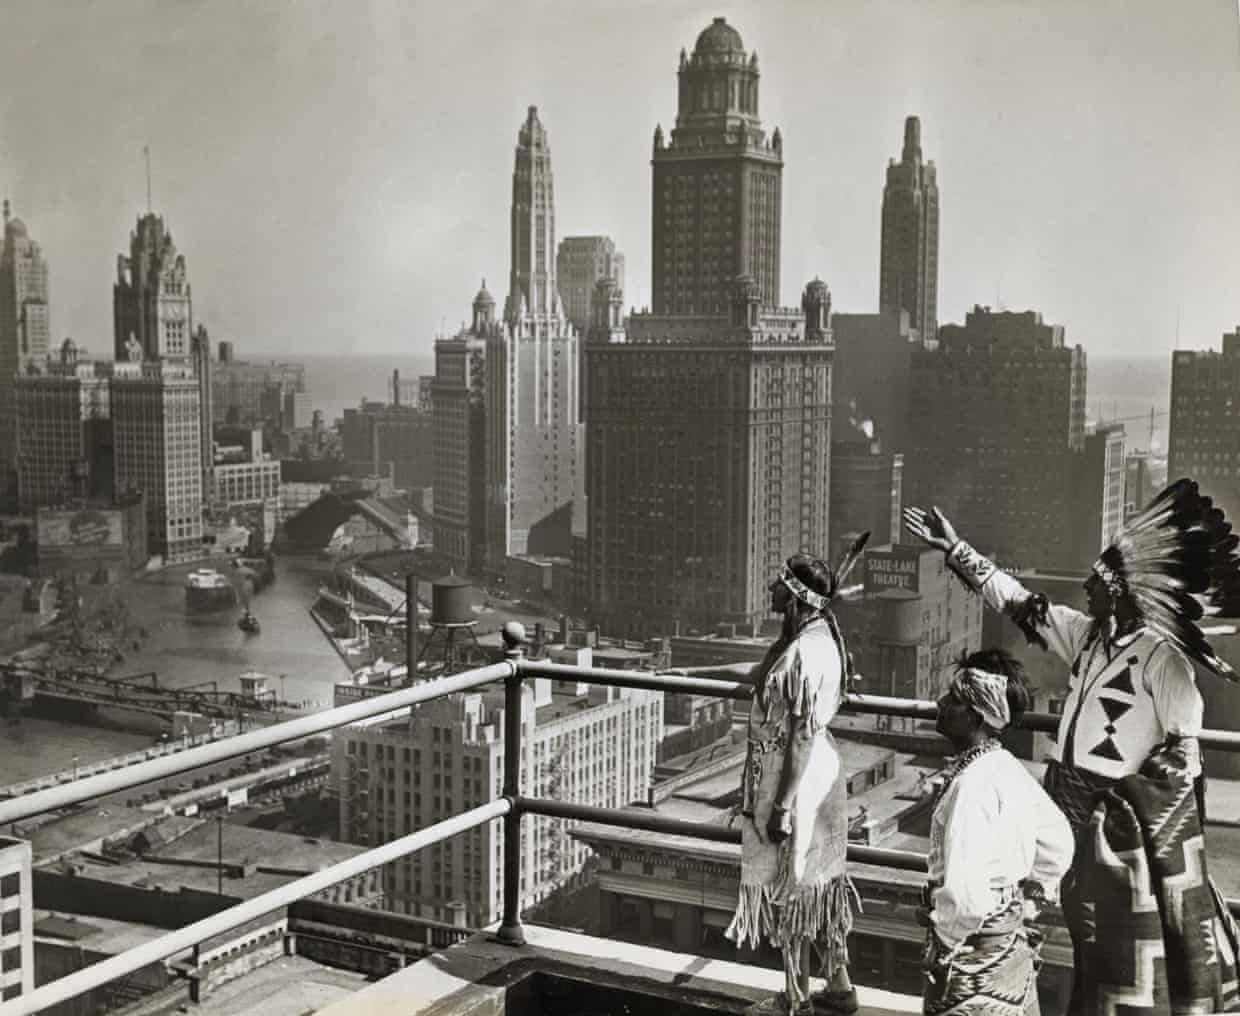 lutheran indian ministries native news - Members of the Chippewa, Pueblo and Winnebago tribes look out over Chicago's skyline from the roof of the Hotel Sherman. Photograph: George Rinhart/Corbis via Getty Images